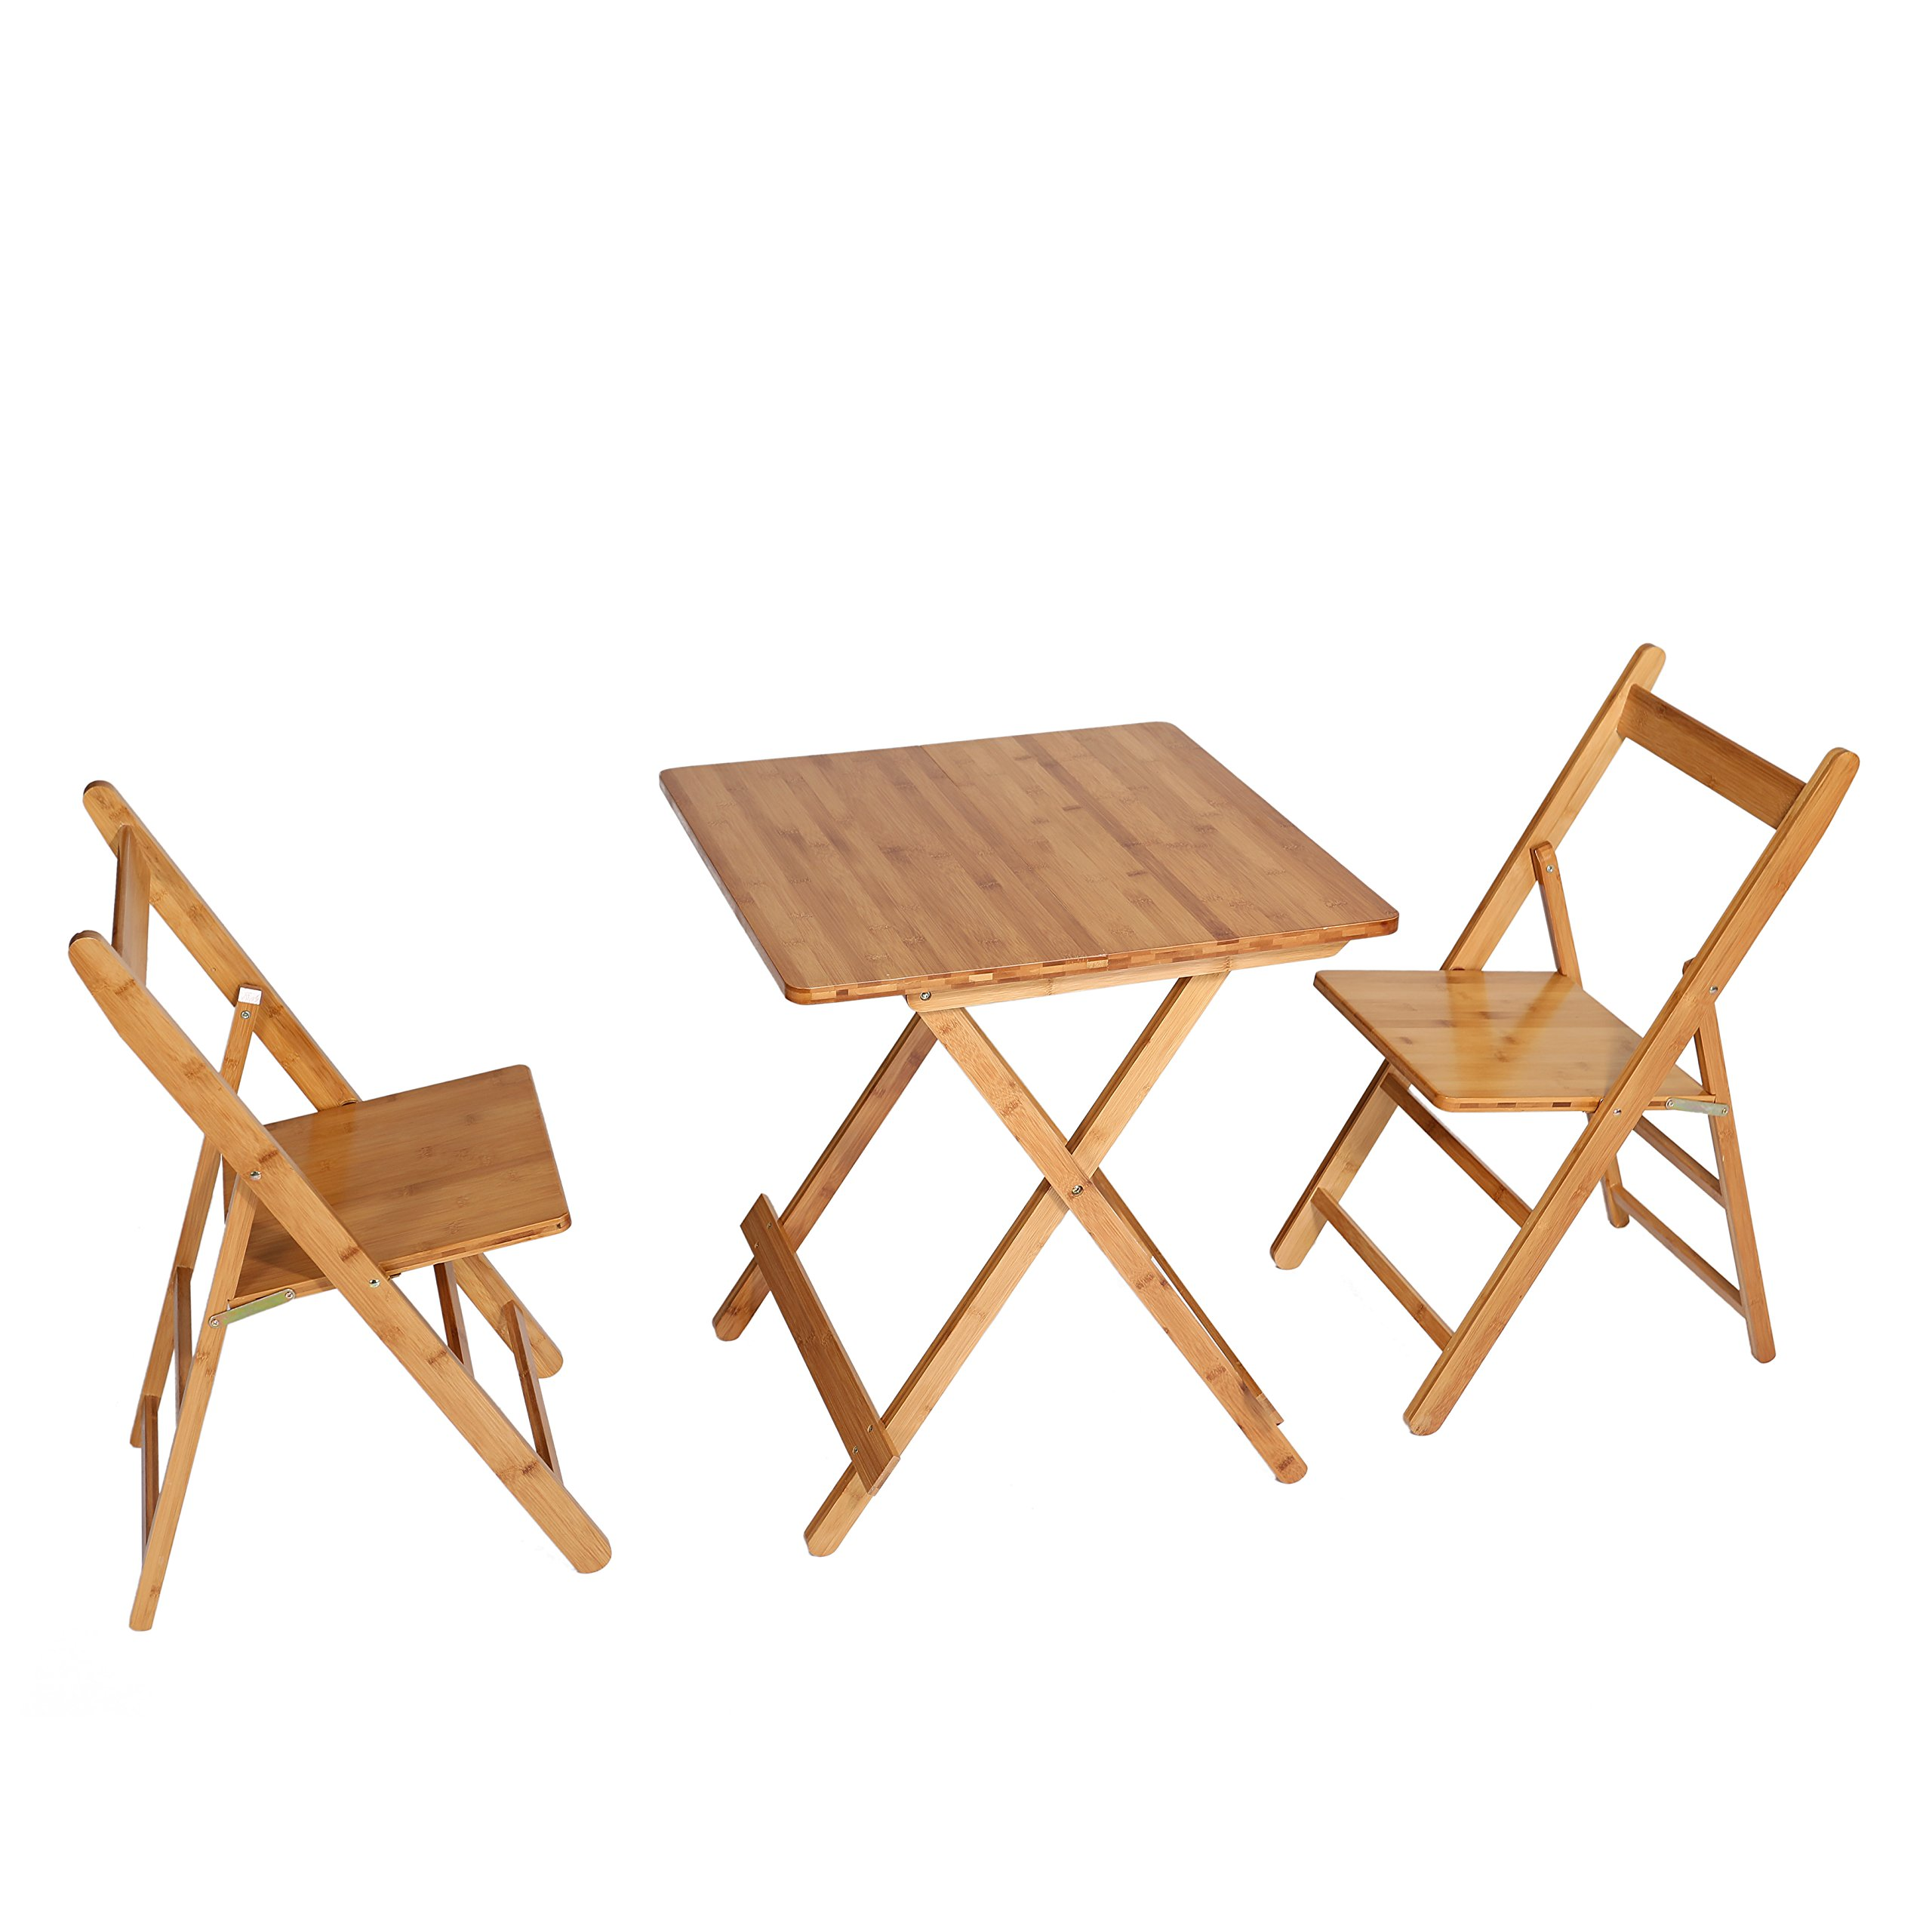 UNICOO - Bamboo Square Folding Deck Table, Card Tables,Patio Table, Bistro Set 3 Piece With Two Folding Chairs (T60-S)